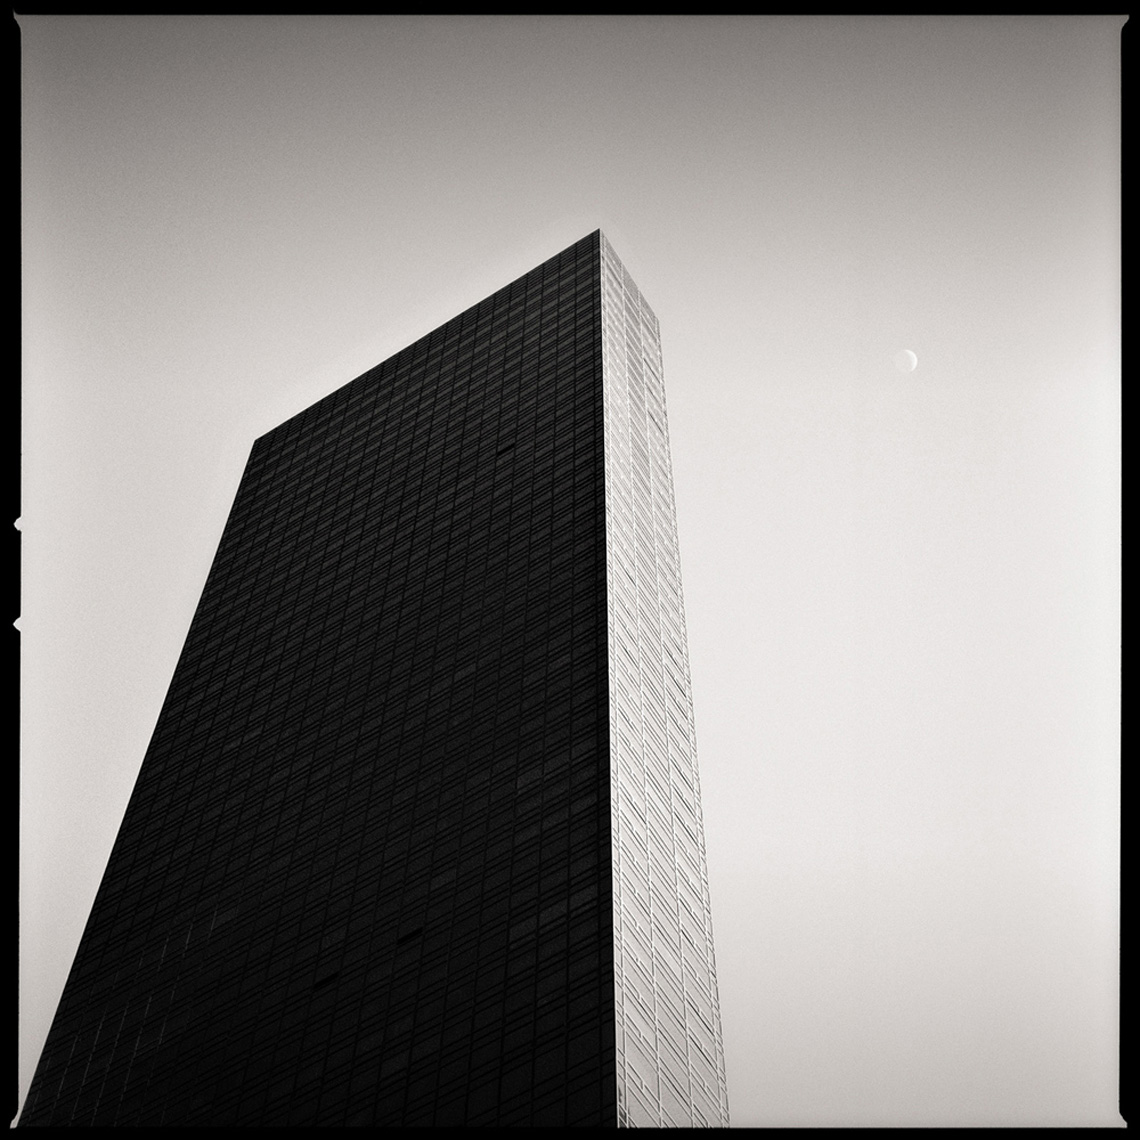 Sean Perry Photographs • Trump Tower, from the series Monolith